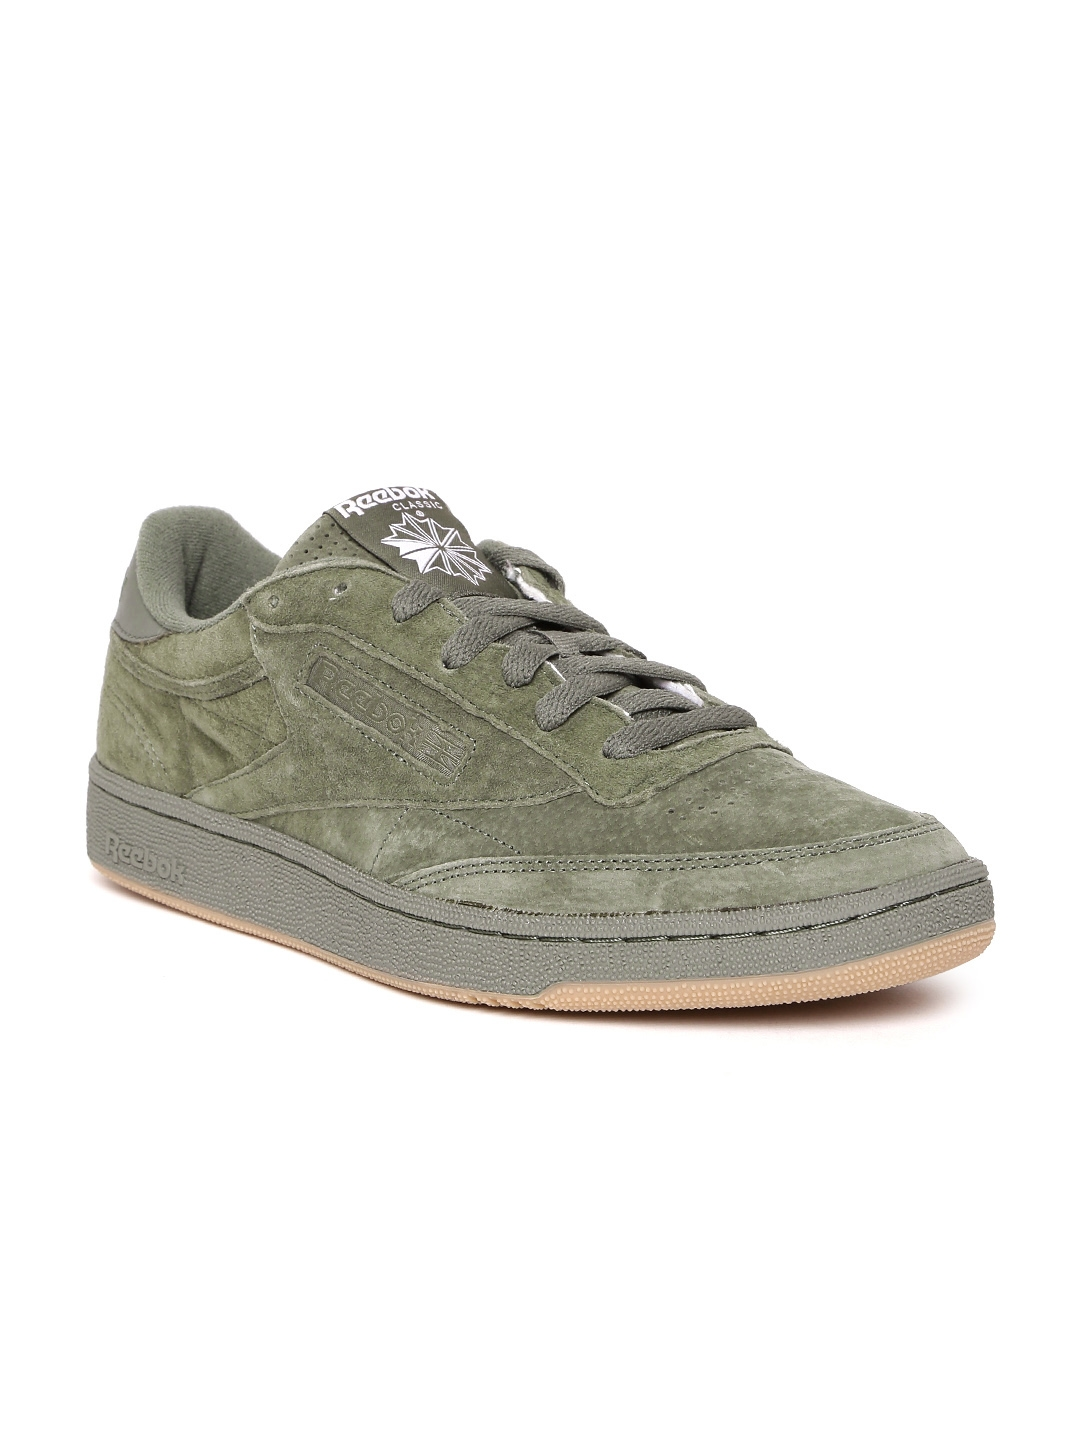 c3f71cc3ff5 Buy Reebok Classic Men Olive Green CLUB C 85 SG Suede Sneakers ...